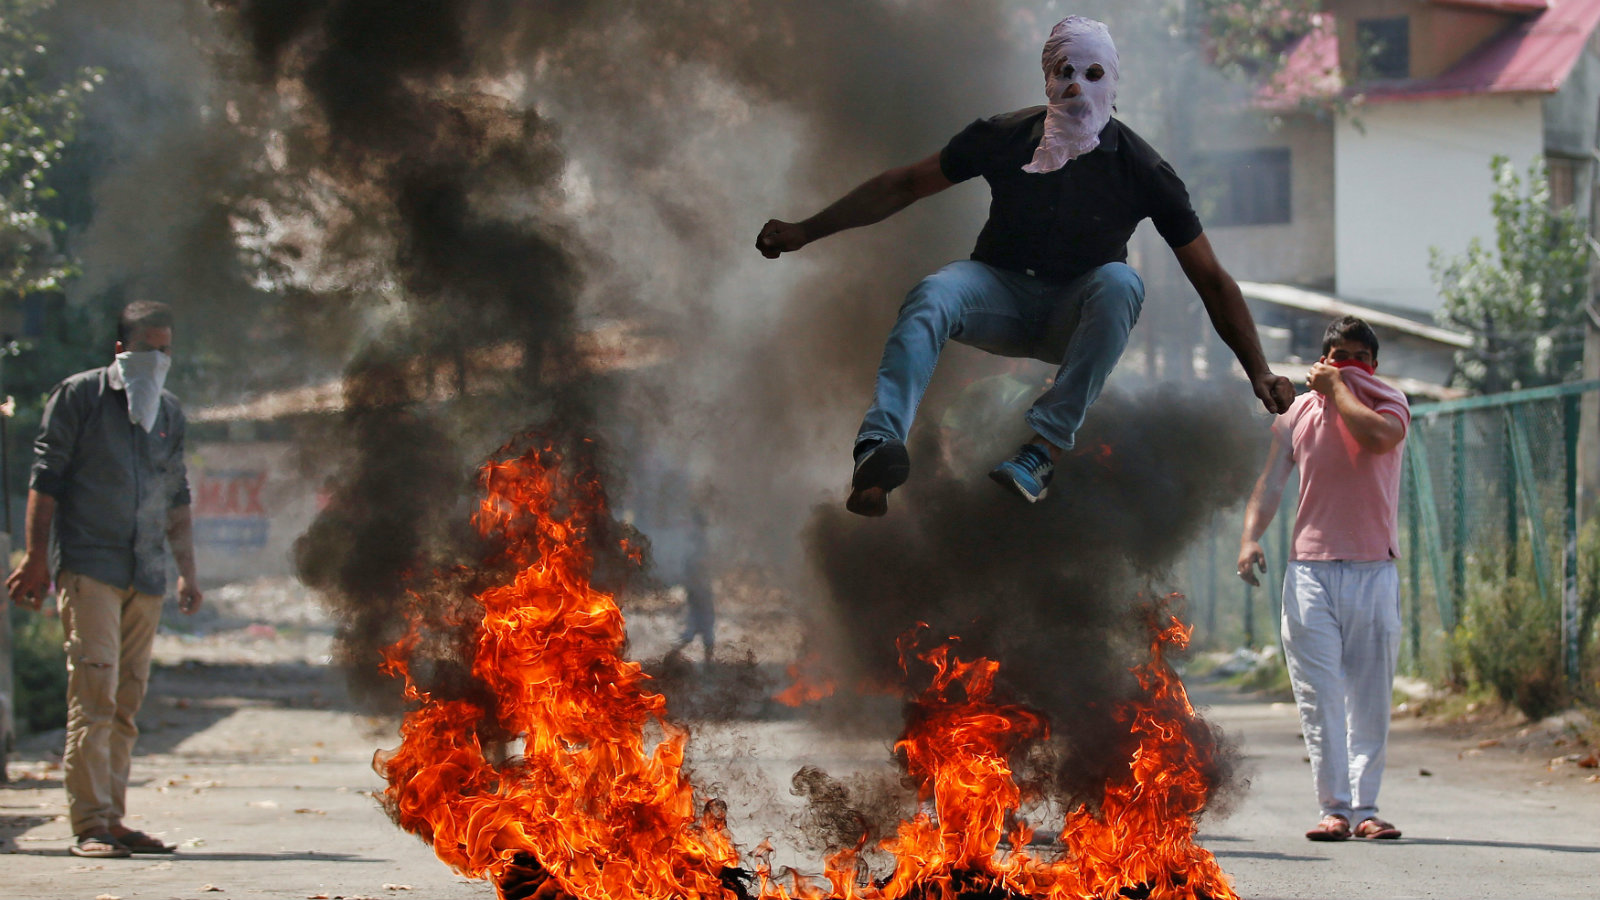 A protester in Kashmir. India has accused Pakistan of fomenting trouble in the restive Himalayan state.